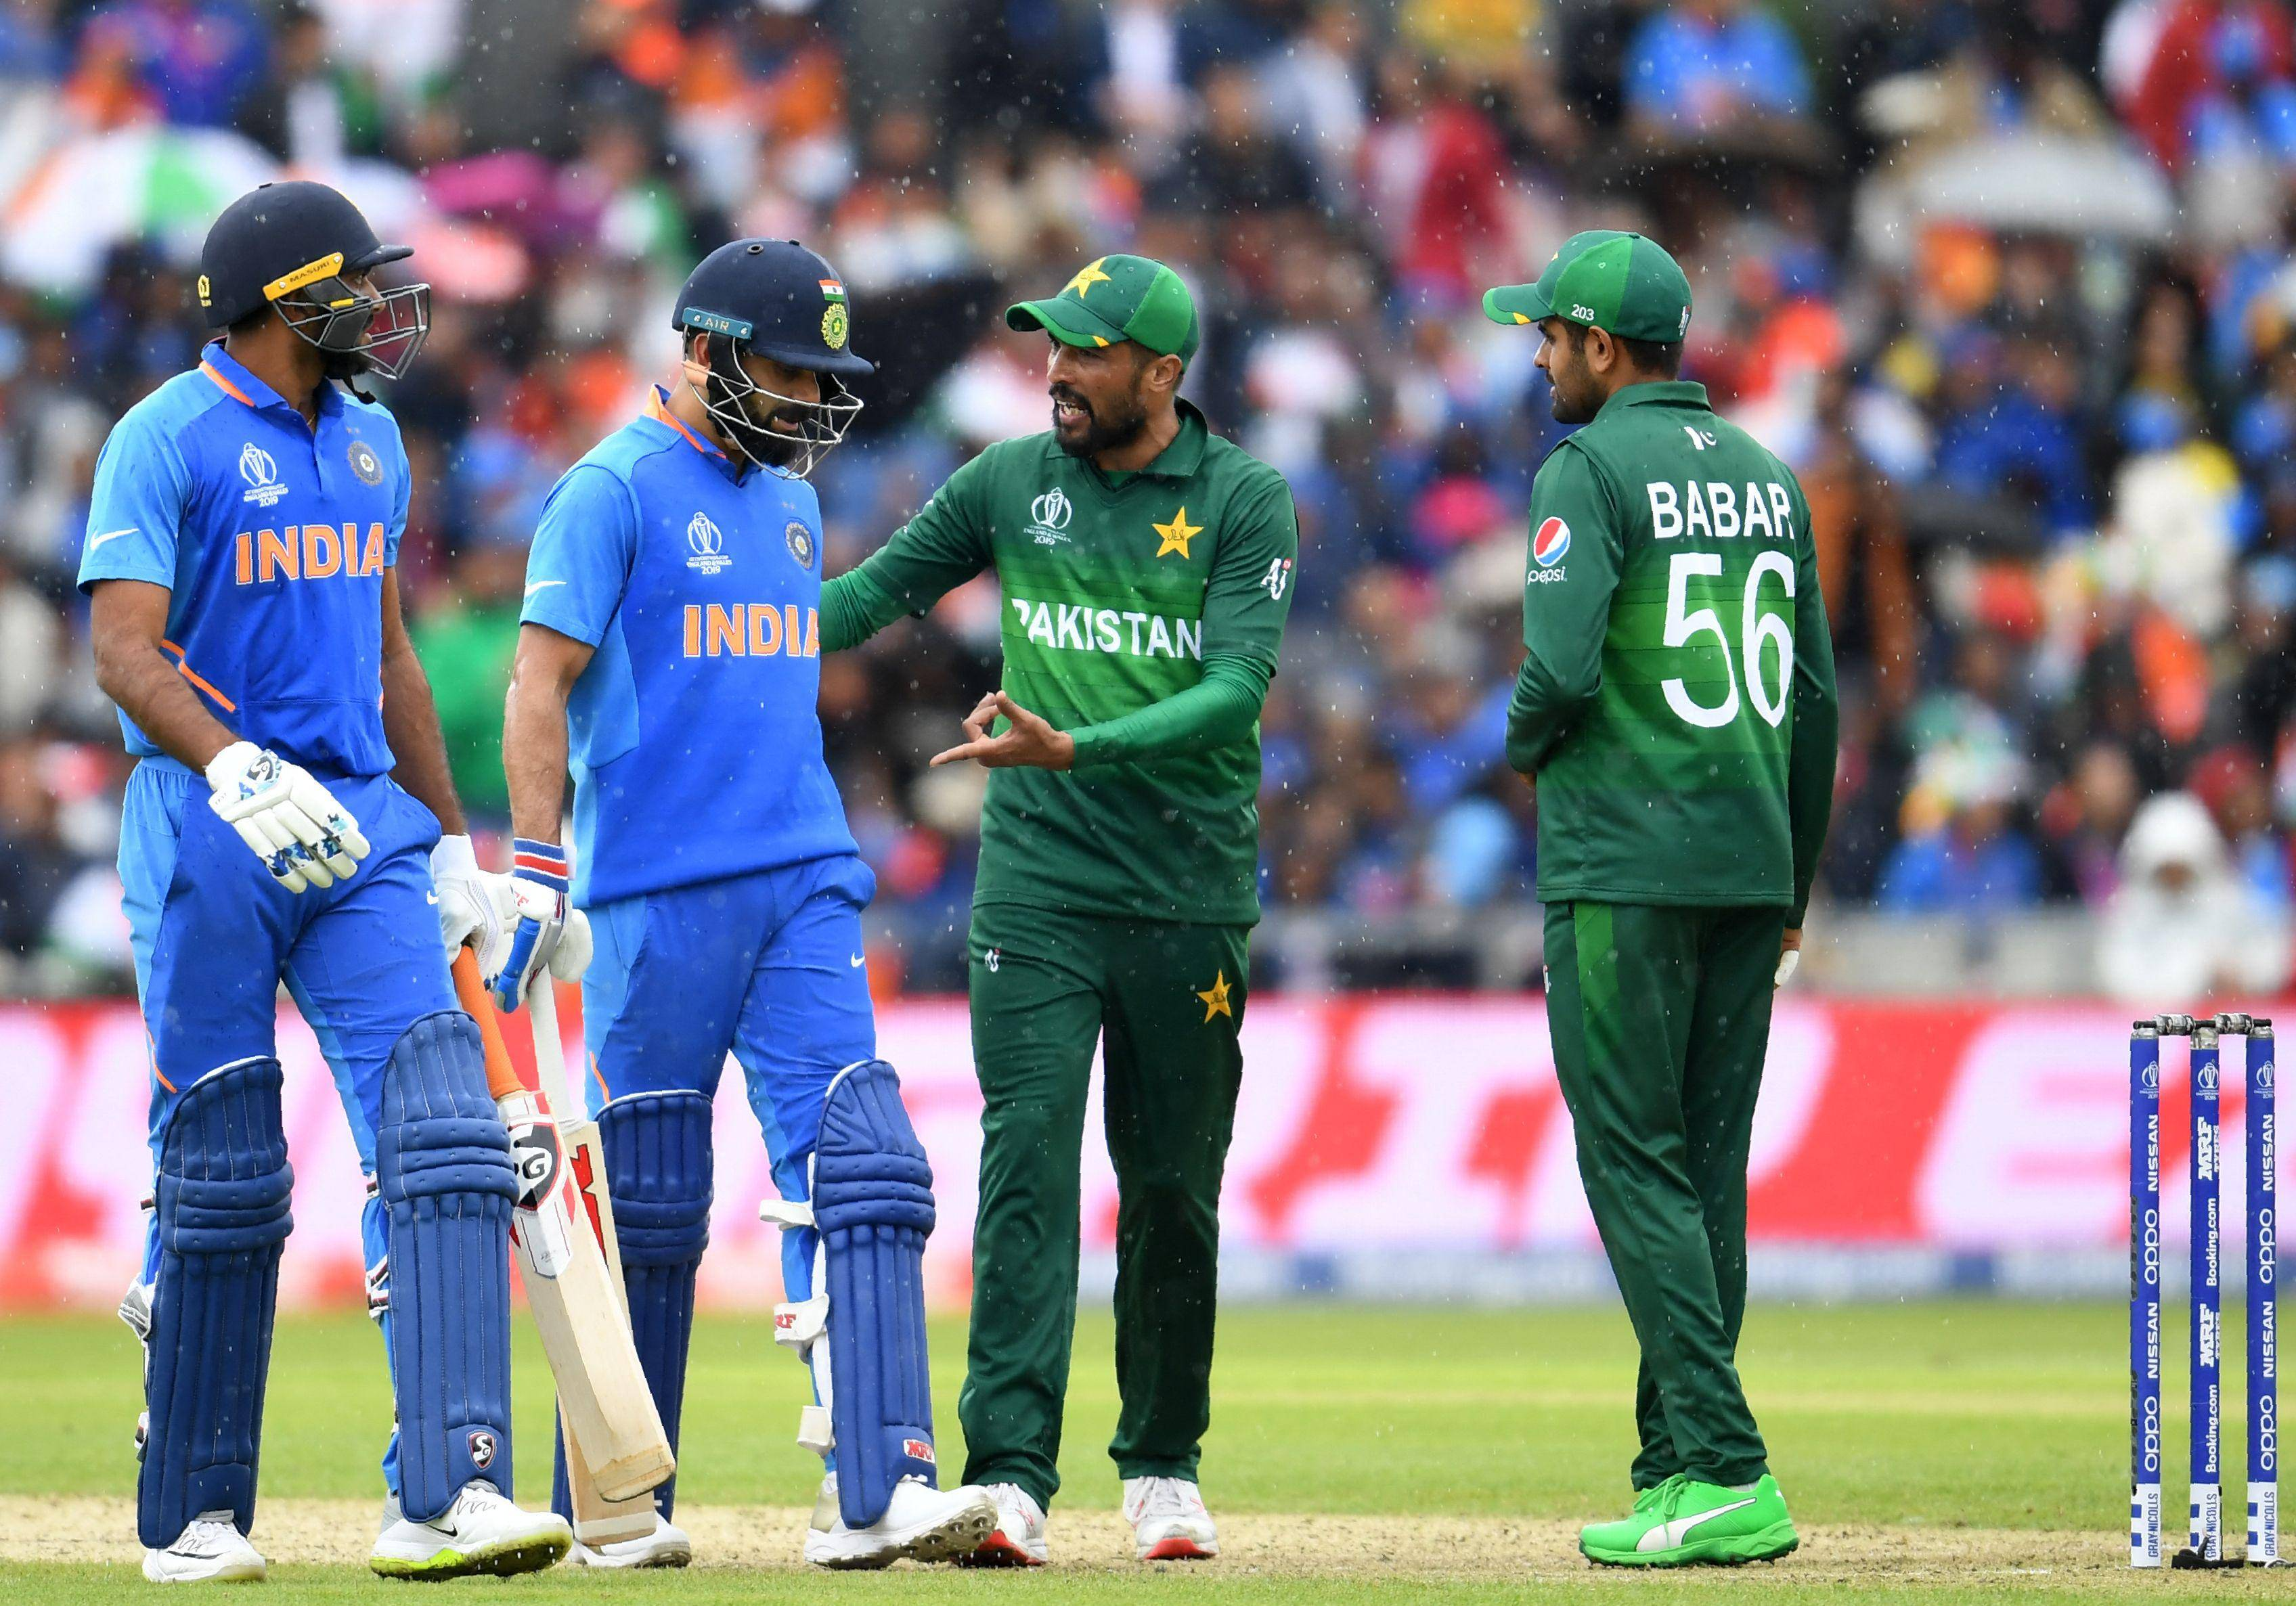 T20 World Cup: The battle royale begins